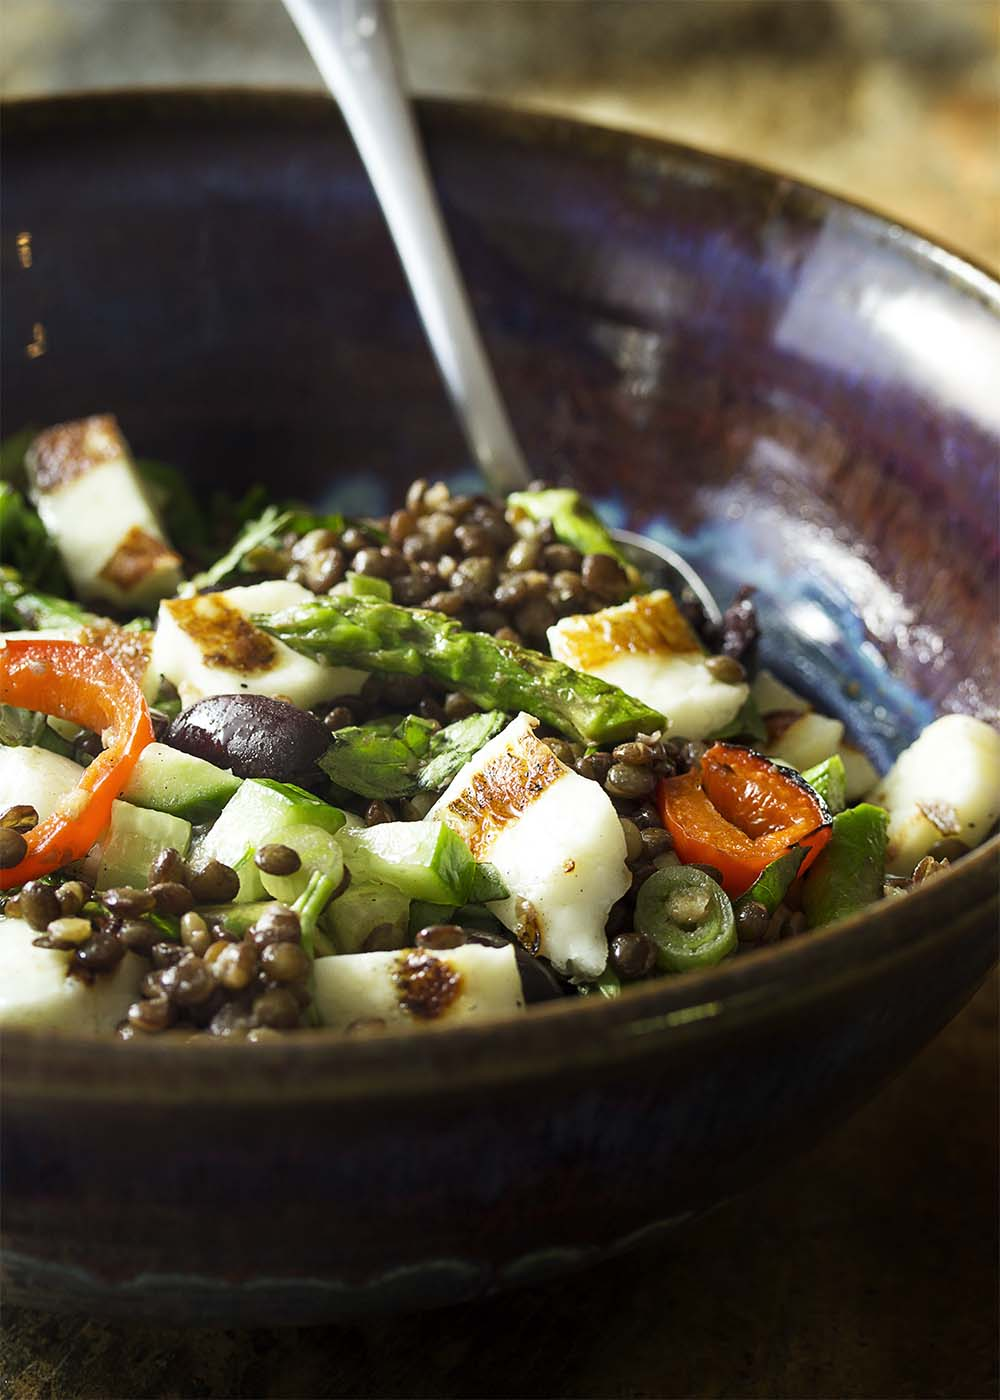 A serving bowl of grilled halloumi and French lentils tossed in a salad with vegetables and sherry vinaigrette.